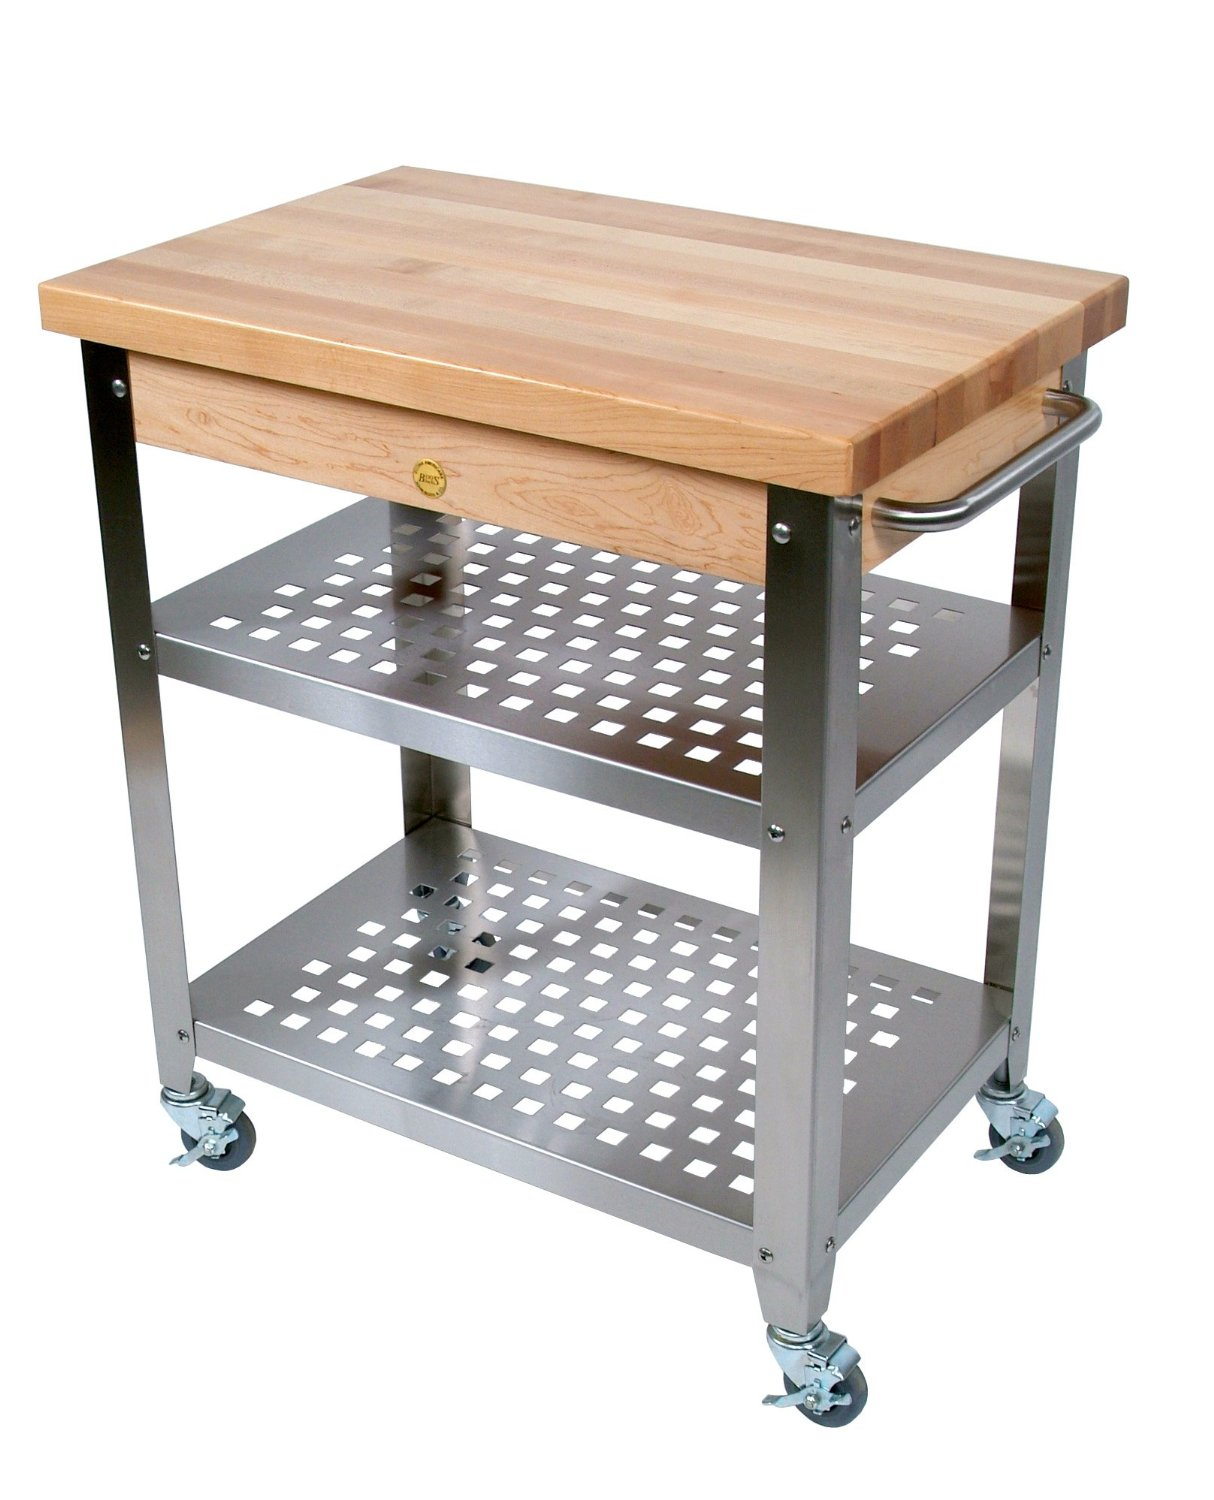 John Boos Stainless Steel Kitchen Cart with 30 by 20 Inch Maple Top and Drawer, Stainless Steel Shelves and Casters